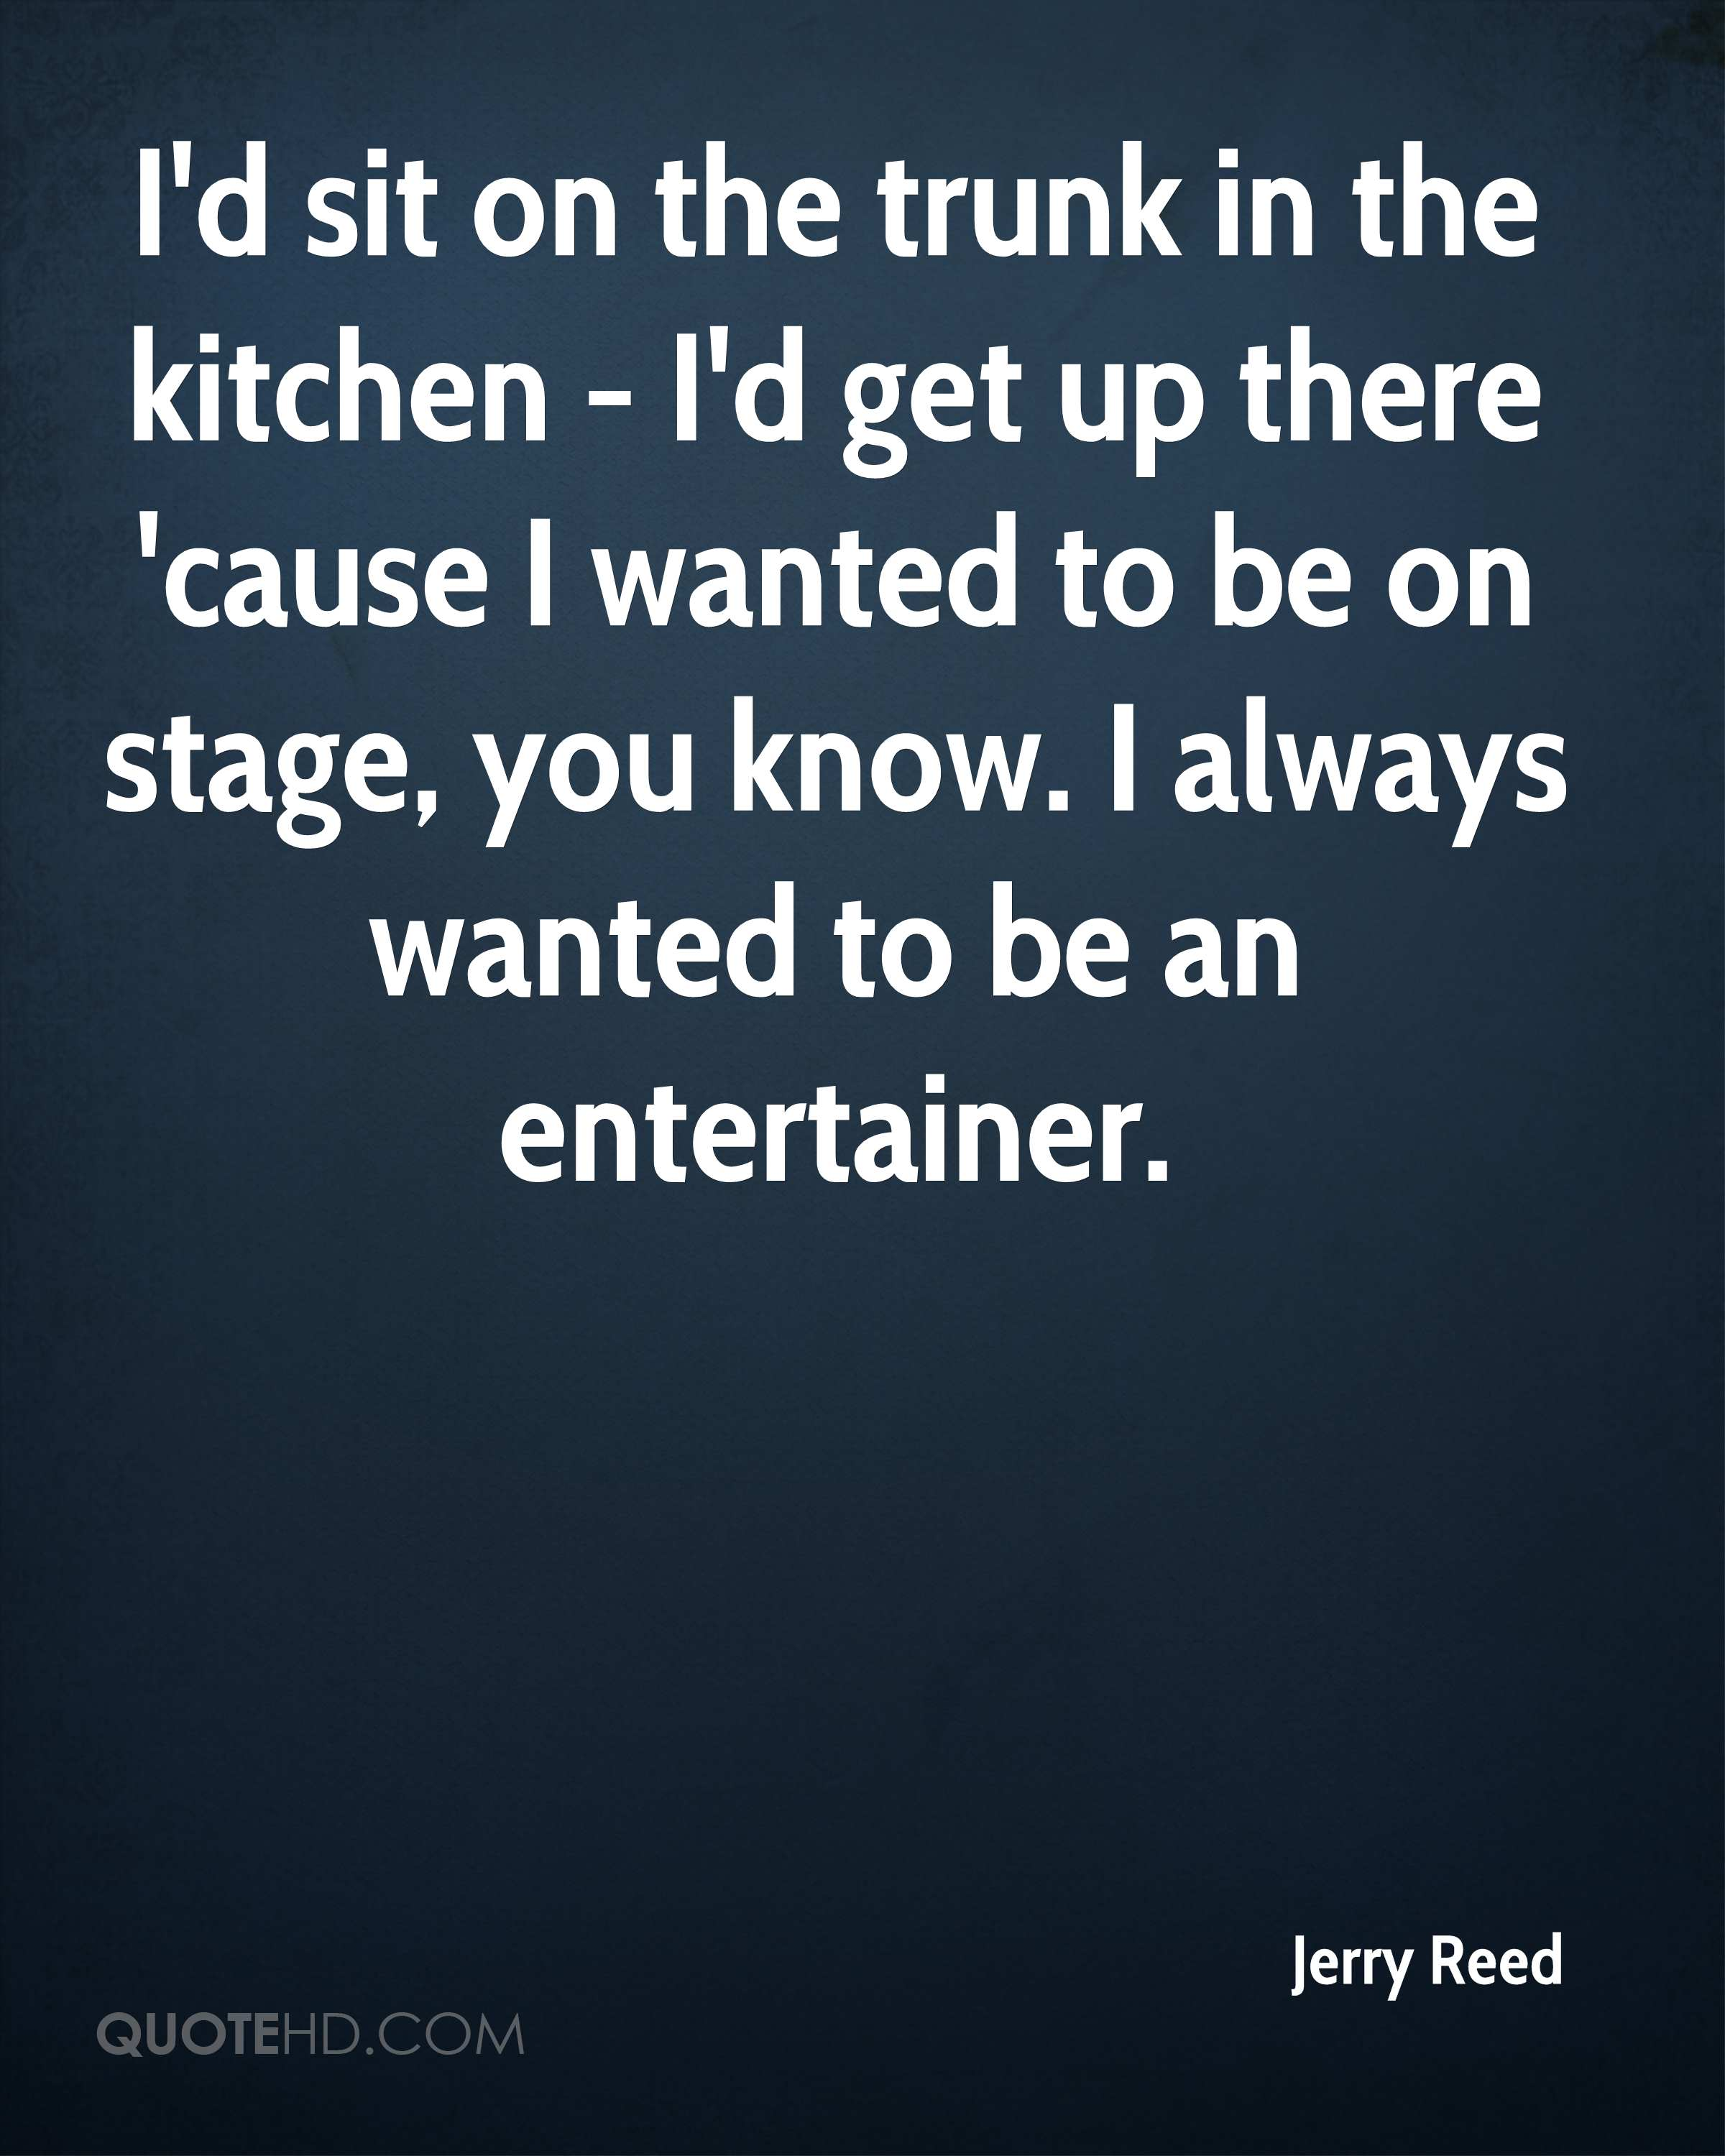 I'd sit on the trunk in the kitchen - I'd get up there 'cause I wanted to be on stage, you know. I always wanted to be an entertainer.